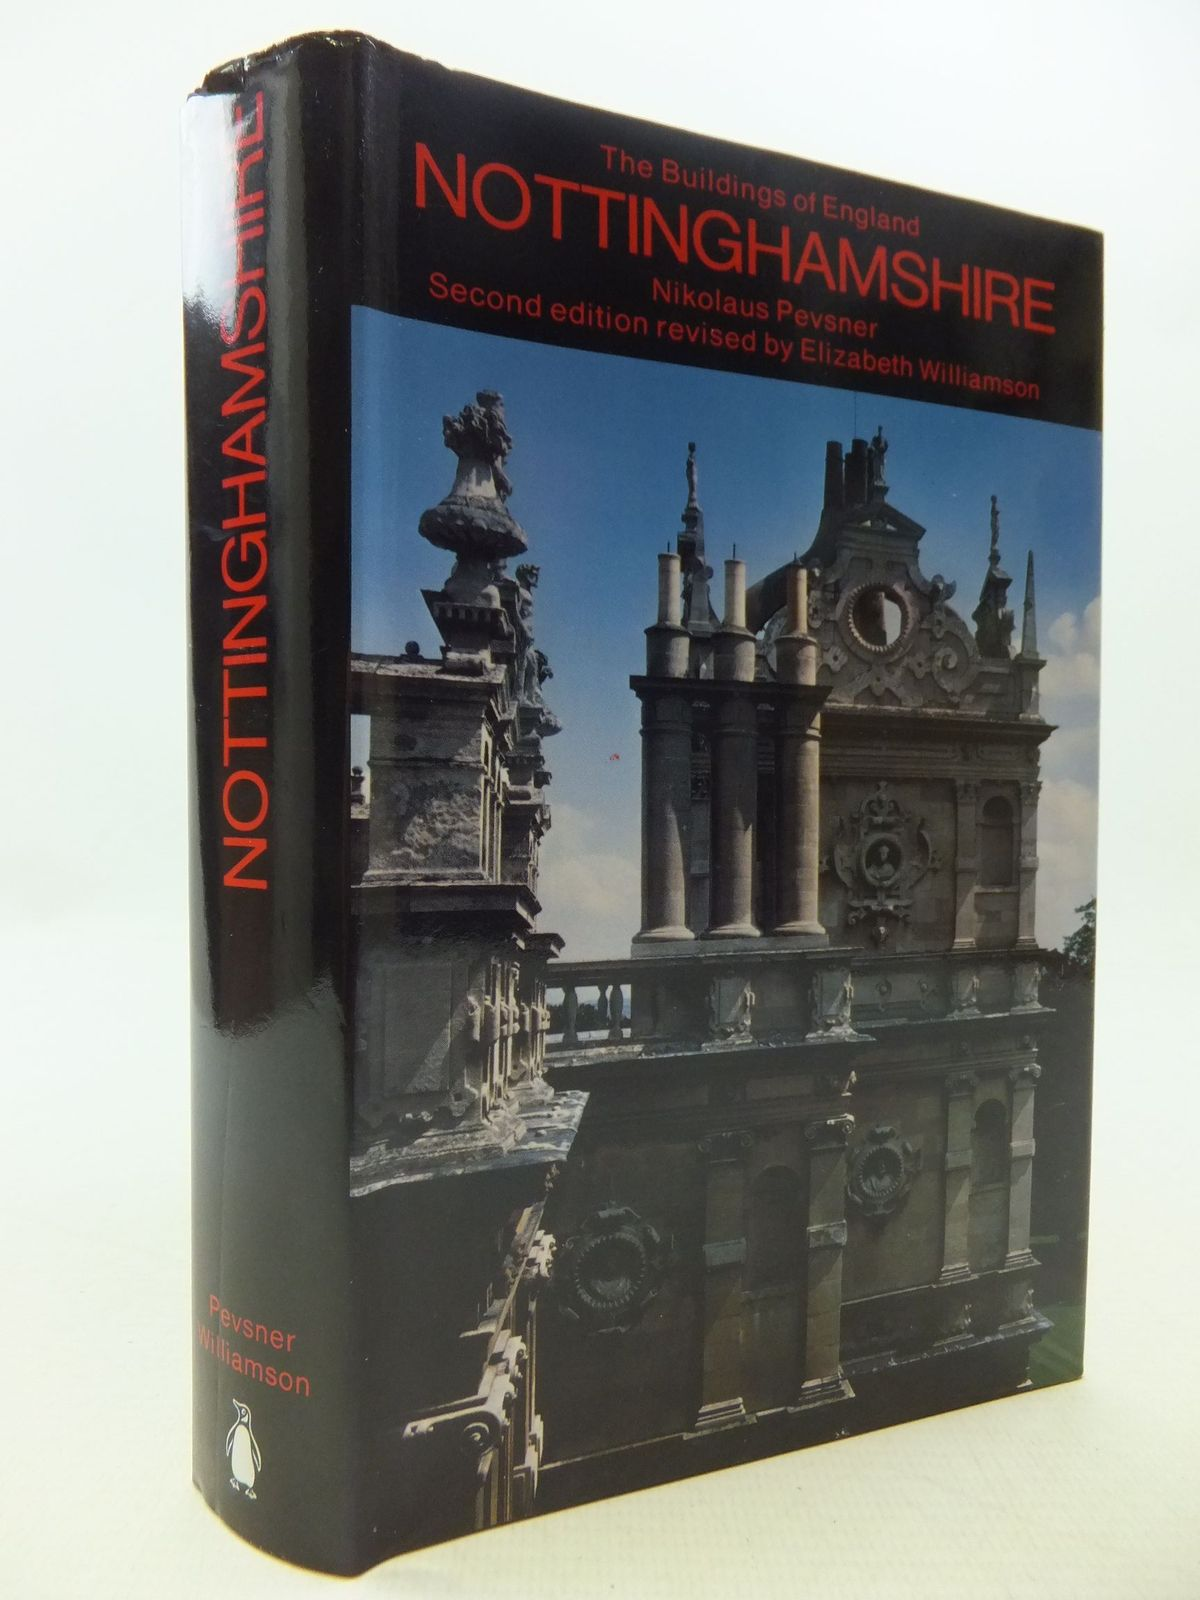 Photo of NOTTINGHAMSHIRE (BUILDINGS OF ENGLAND)